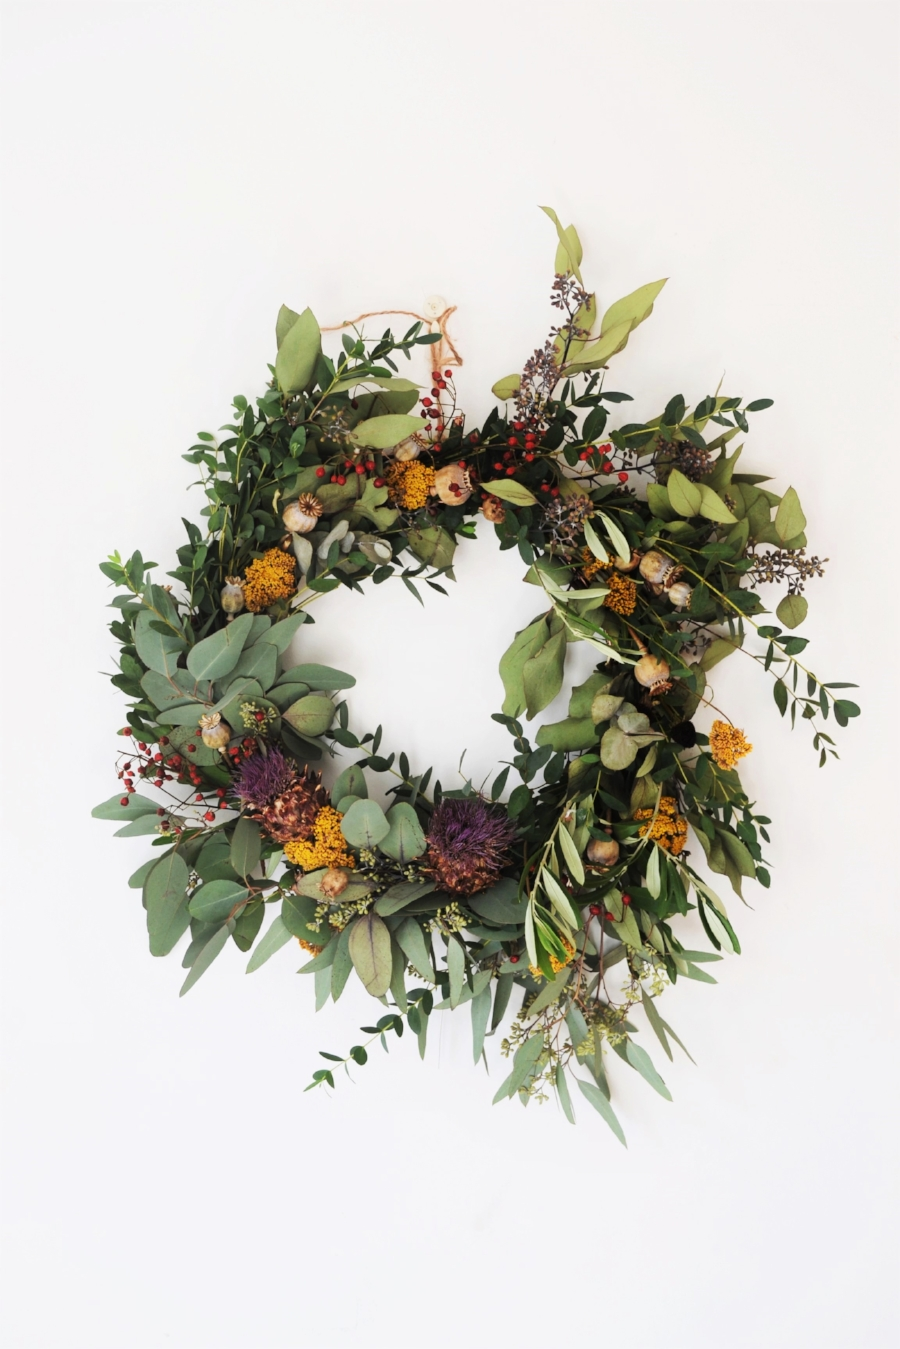 How-to-make-an-autumn-wreath-webb-and-farrer-brighton-flower-workshop (20).JPG